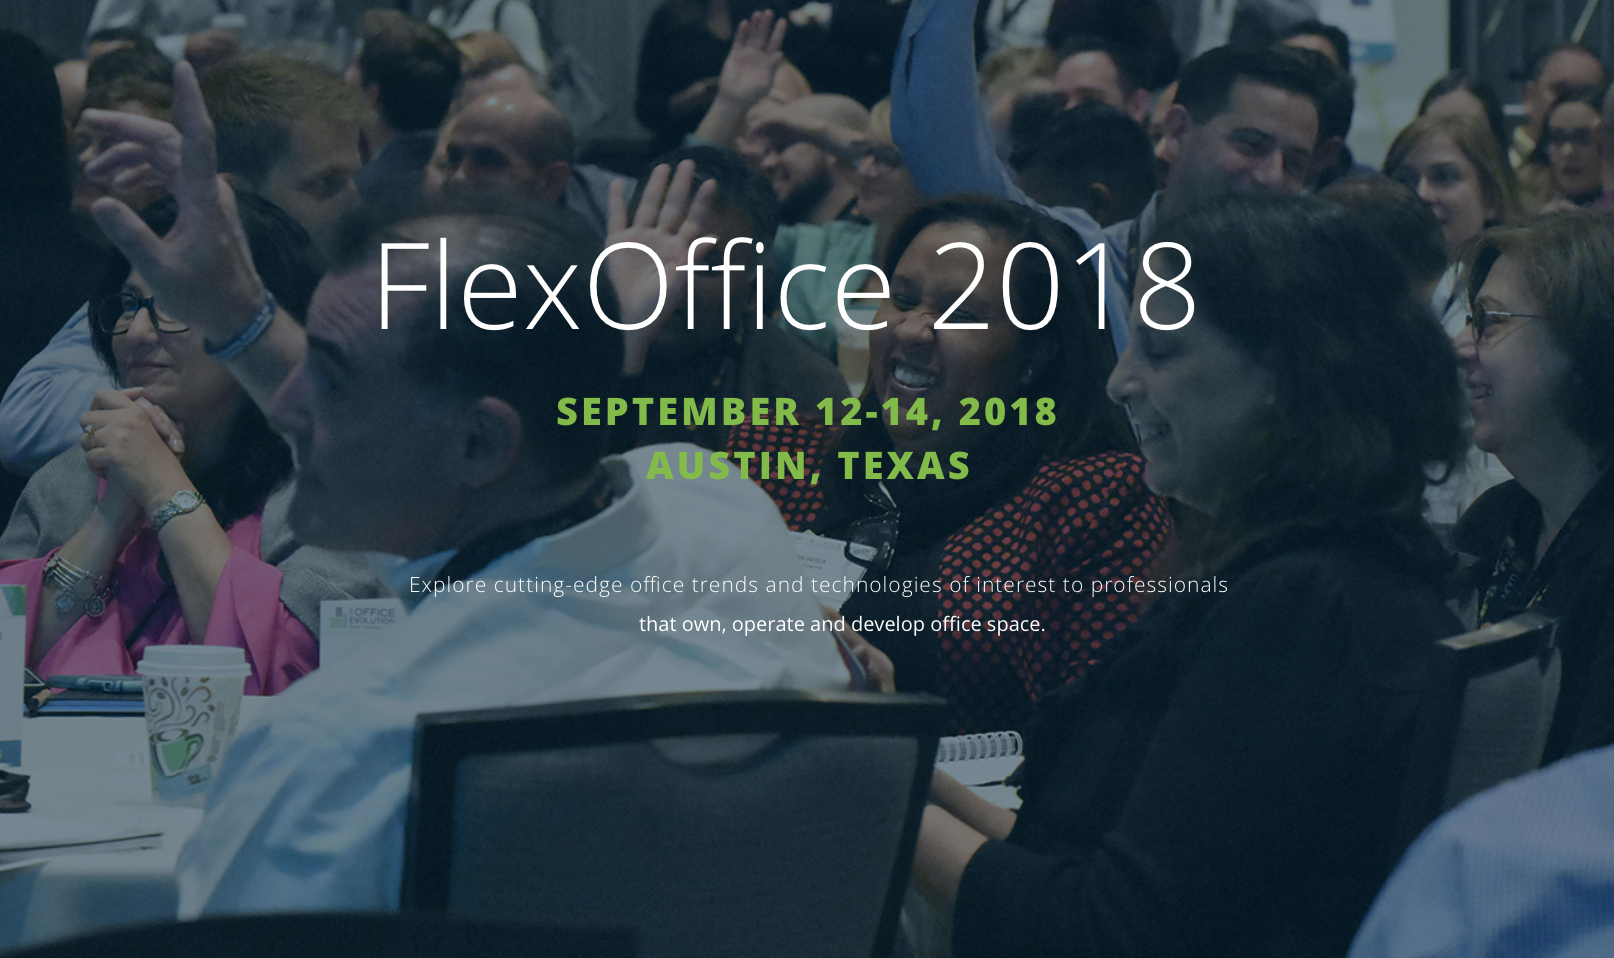 Insights from the Flex Office Conference 2018